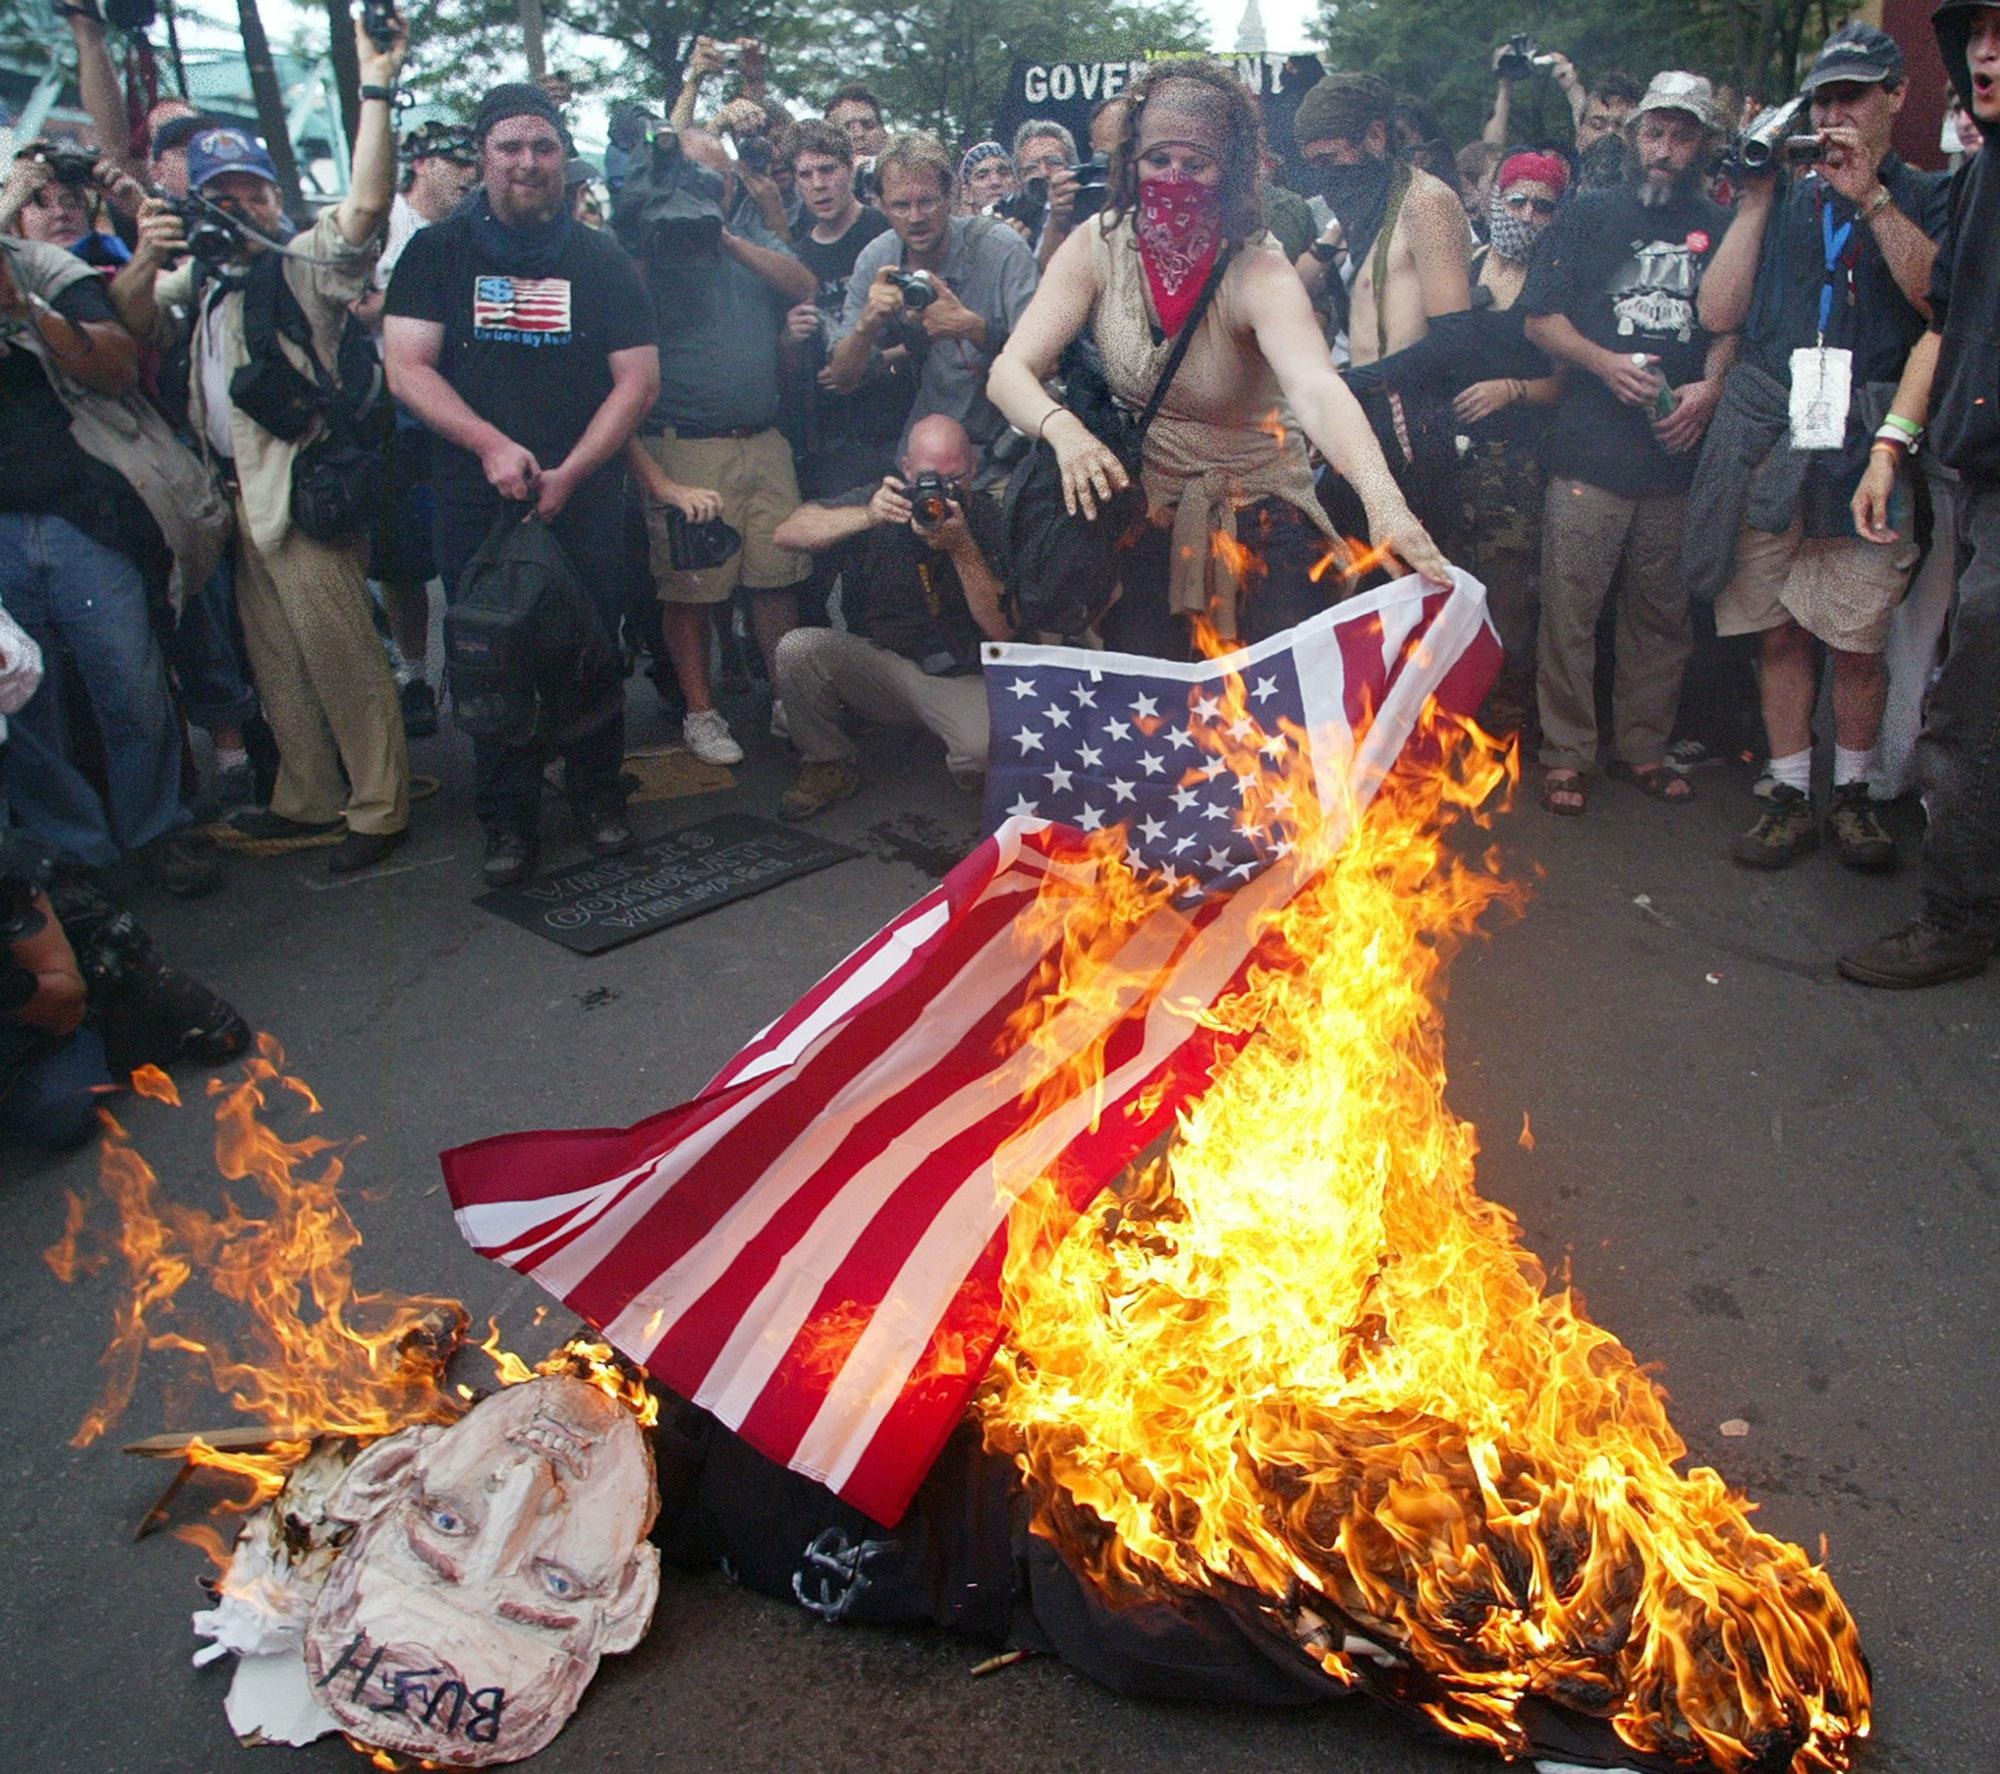 <p>Protesters burn an American flag and an effigy of President Bush and Sen. John Kerry on the last day of the Democratic National Convention in Boston, Thursday, July 29, 2004. (AP Photo/Rick Bowmer) </p>